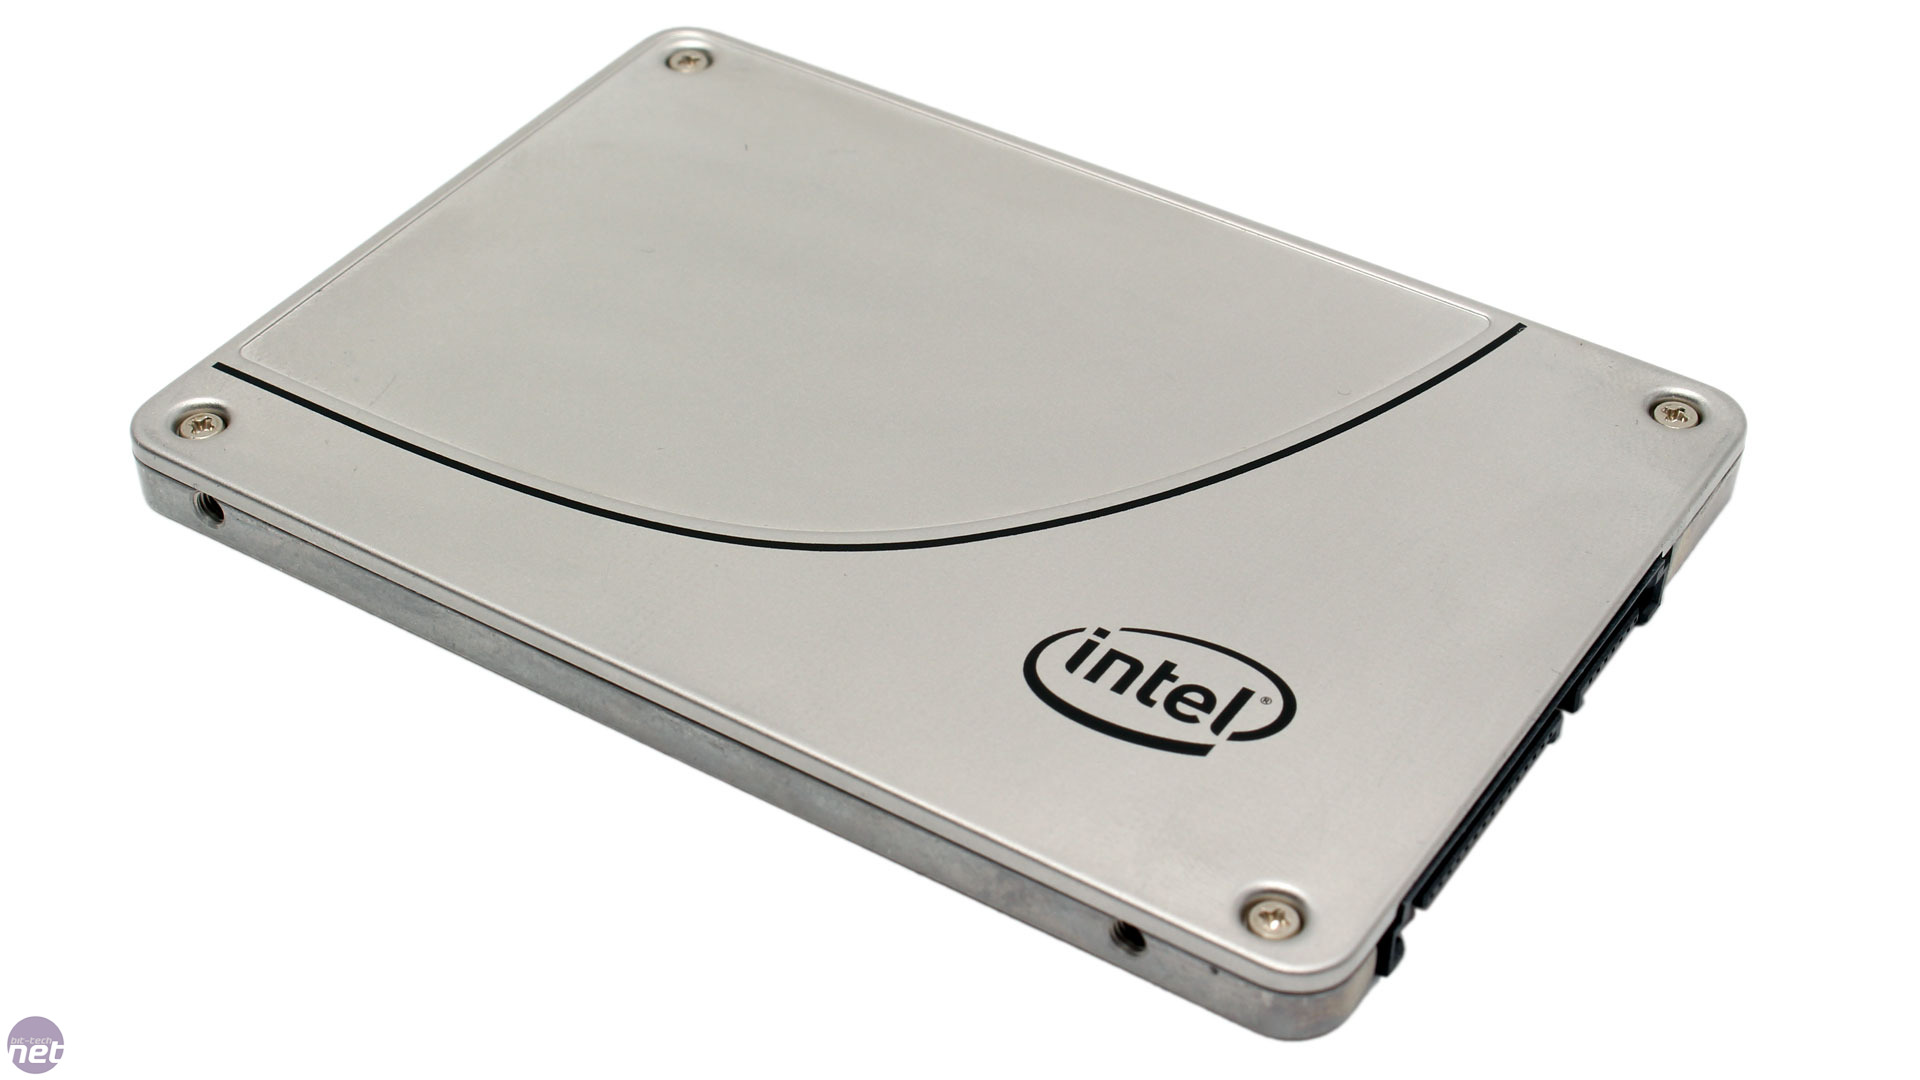 Intel SSD 730 240GB Review | bit-tech net